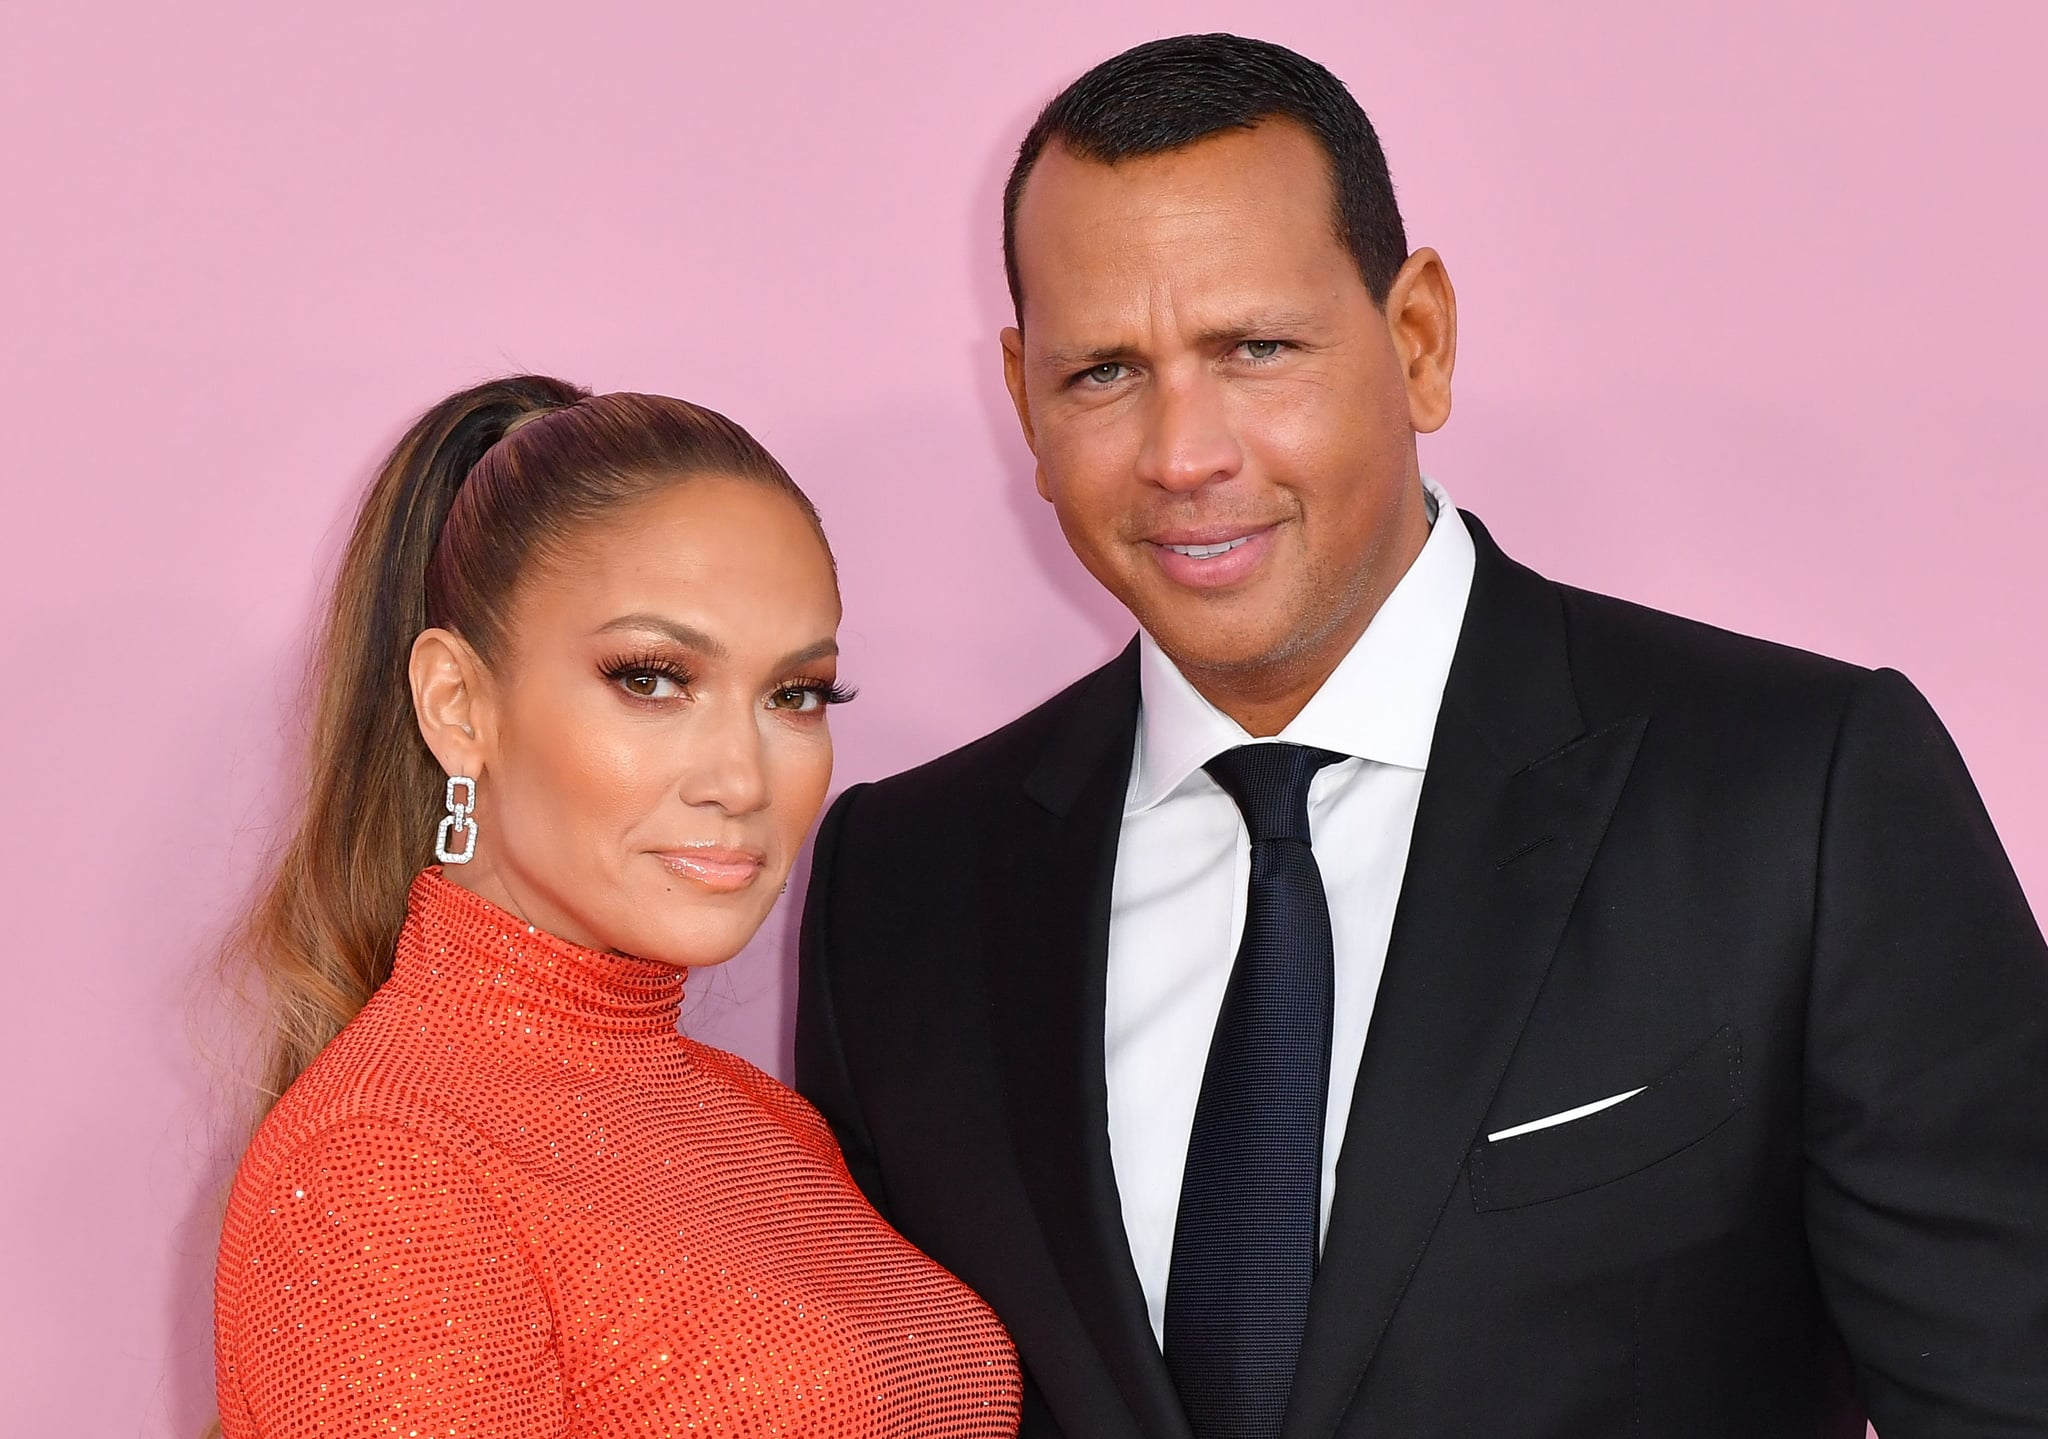 Why Did Jennifer Lopez and Alex Rodriguez Break Up? Here's What We Know